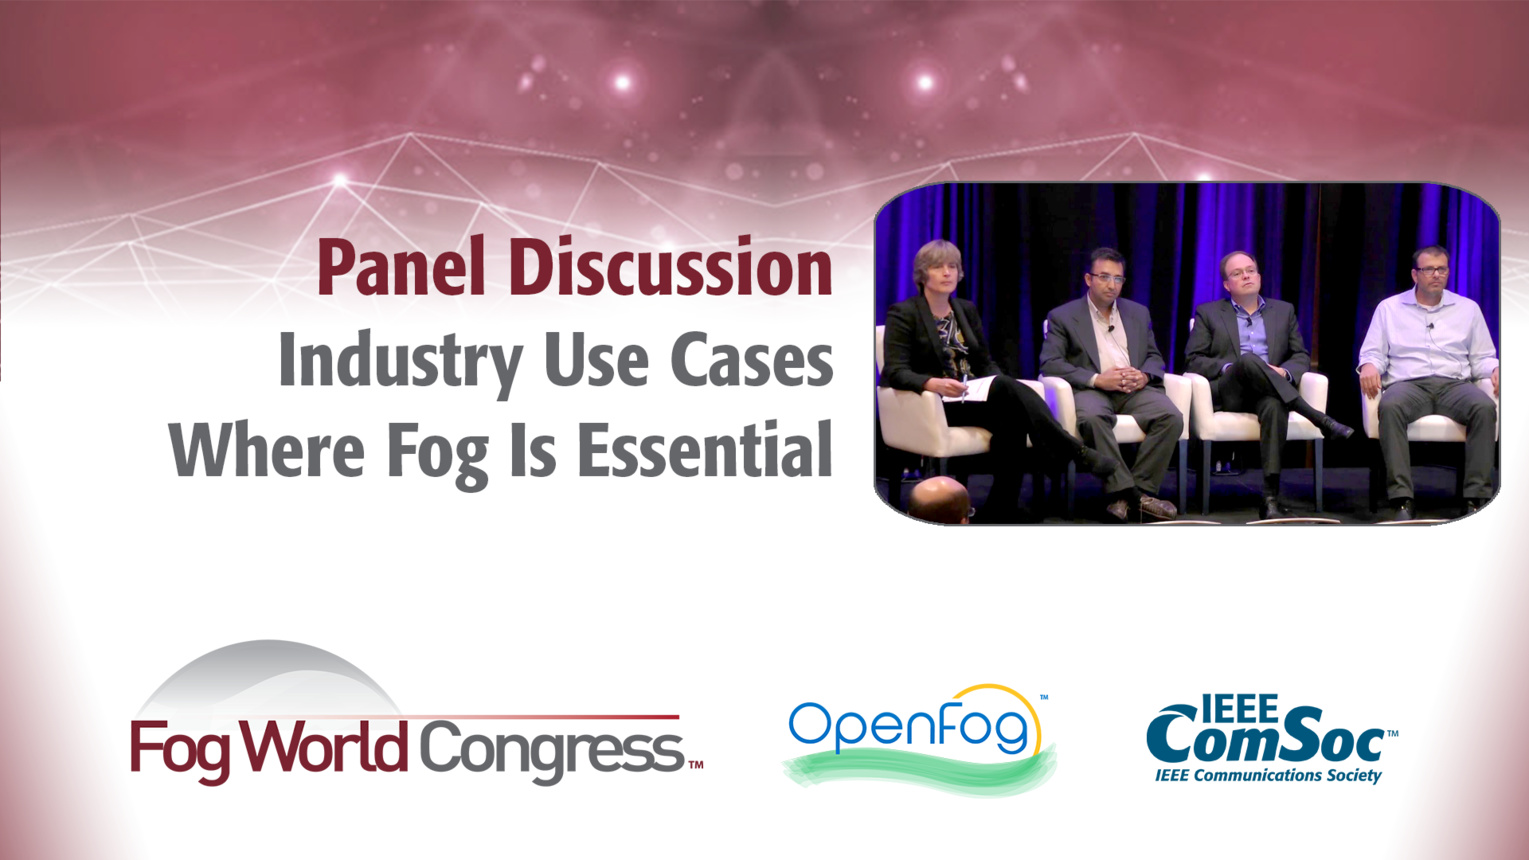 Industry Use Cases Where Fog Is Essential - Fog World Congress 2017